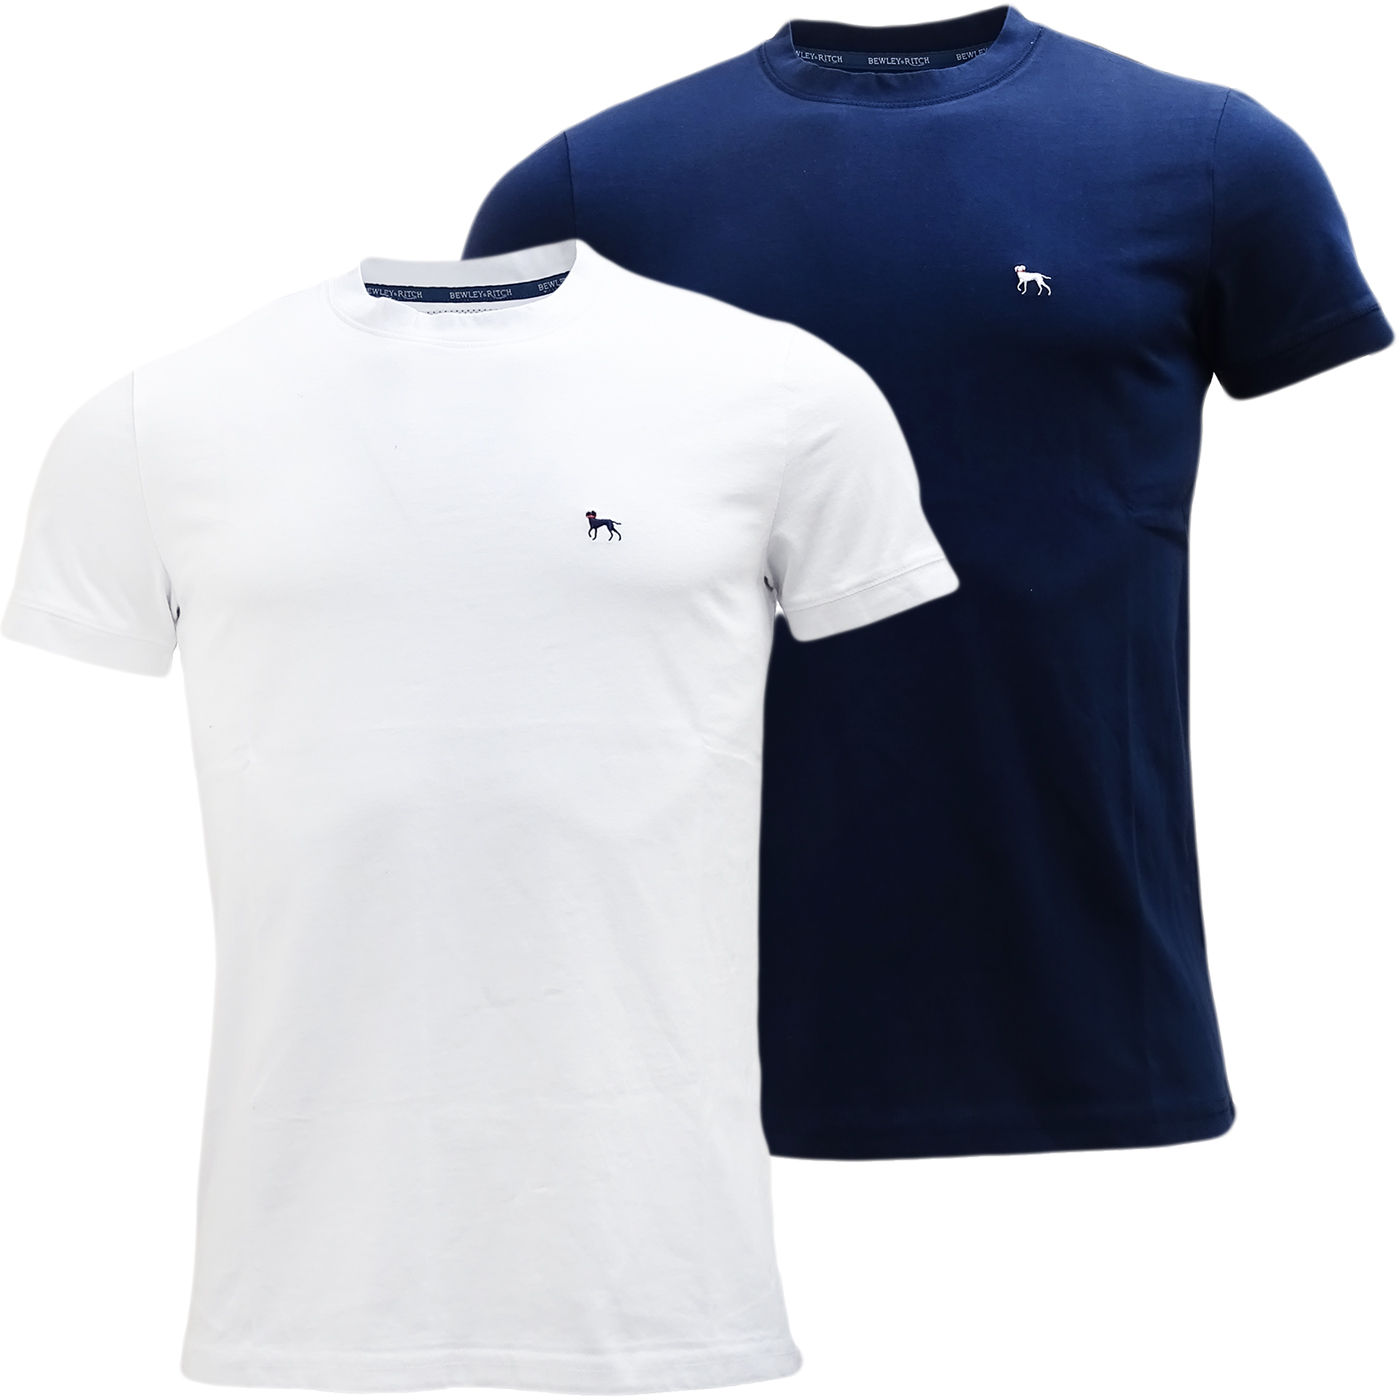 Bewley & Ritch Plain Slim Fit T Shirt - Roman